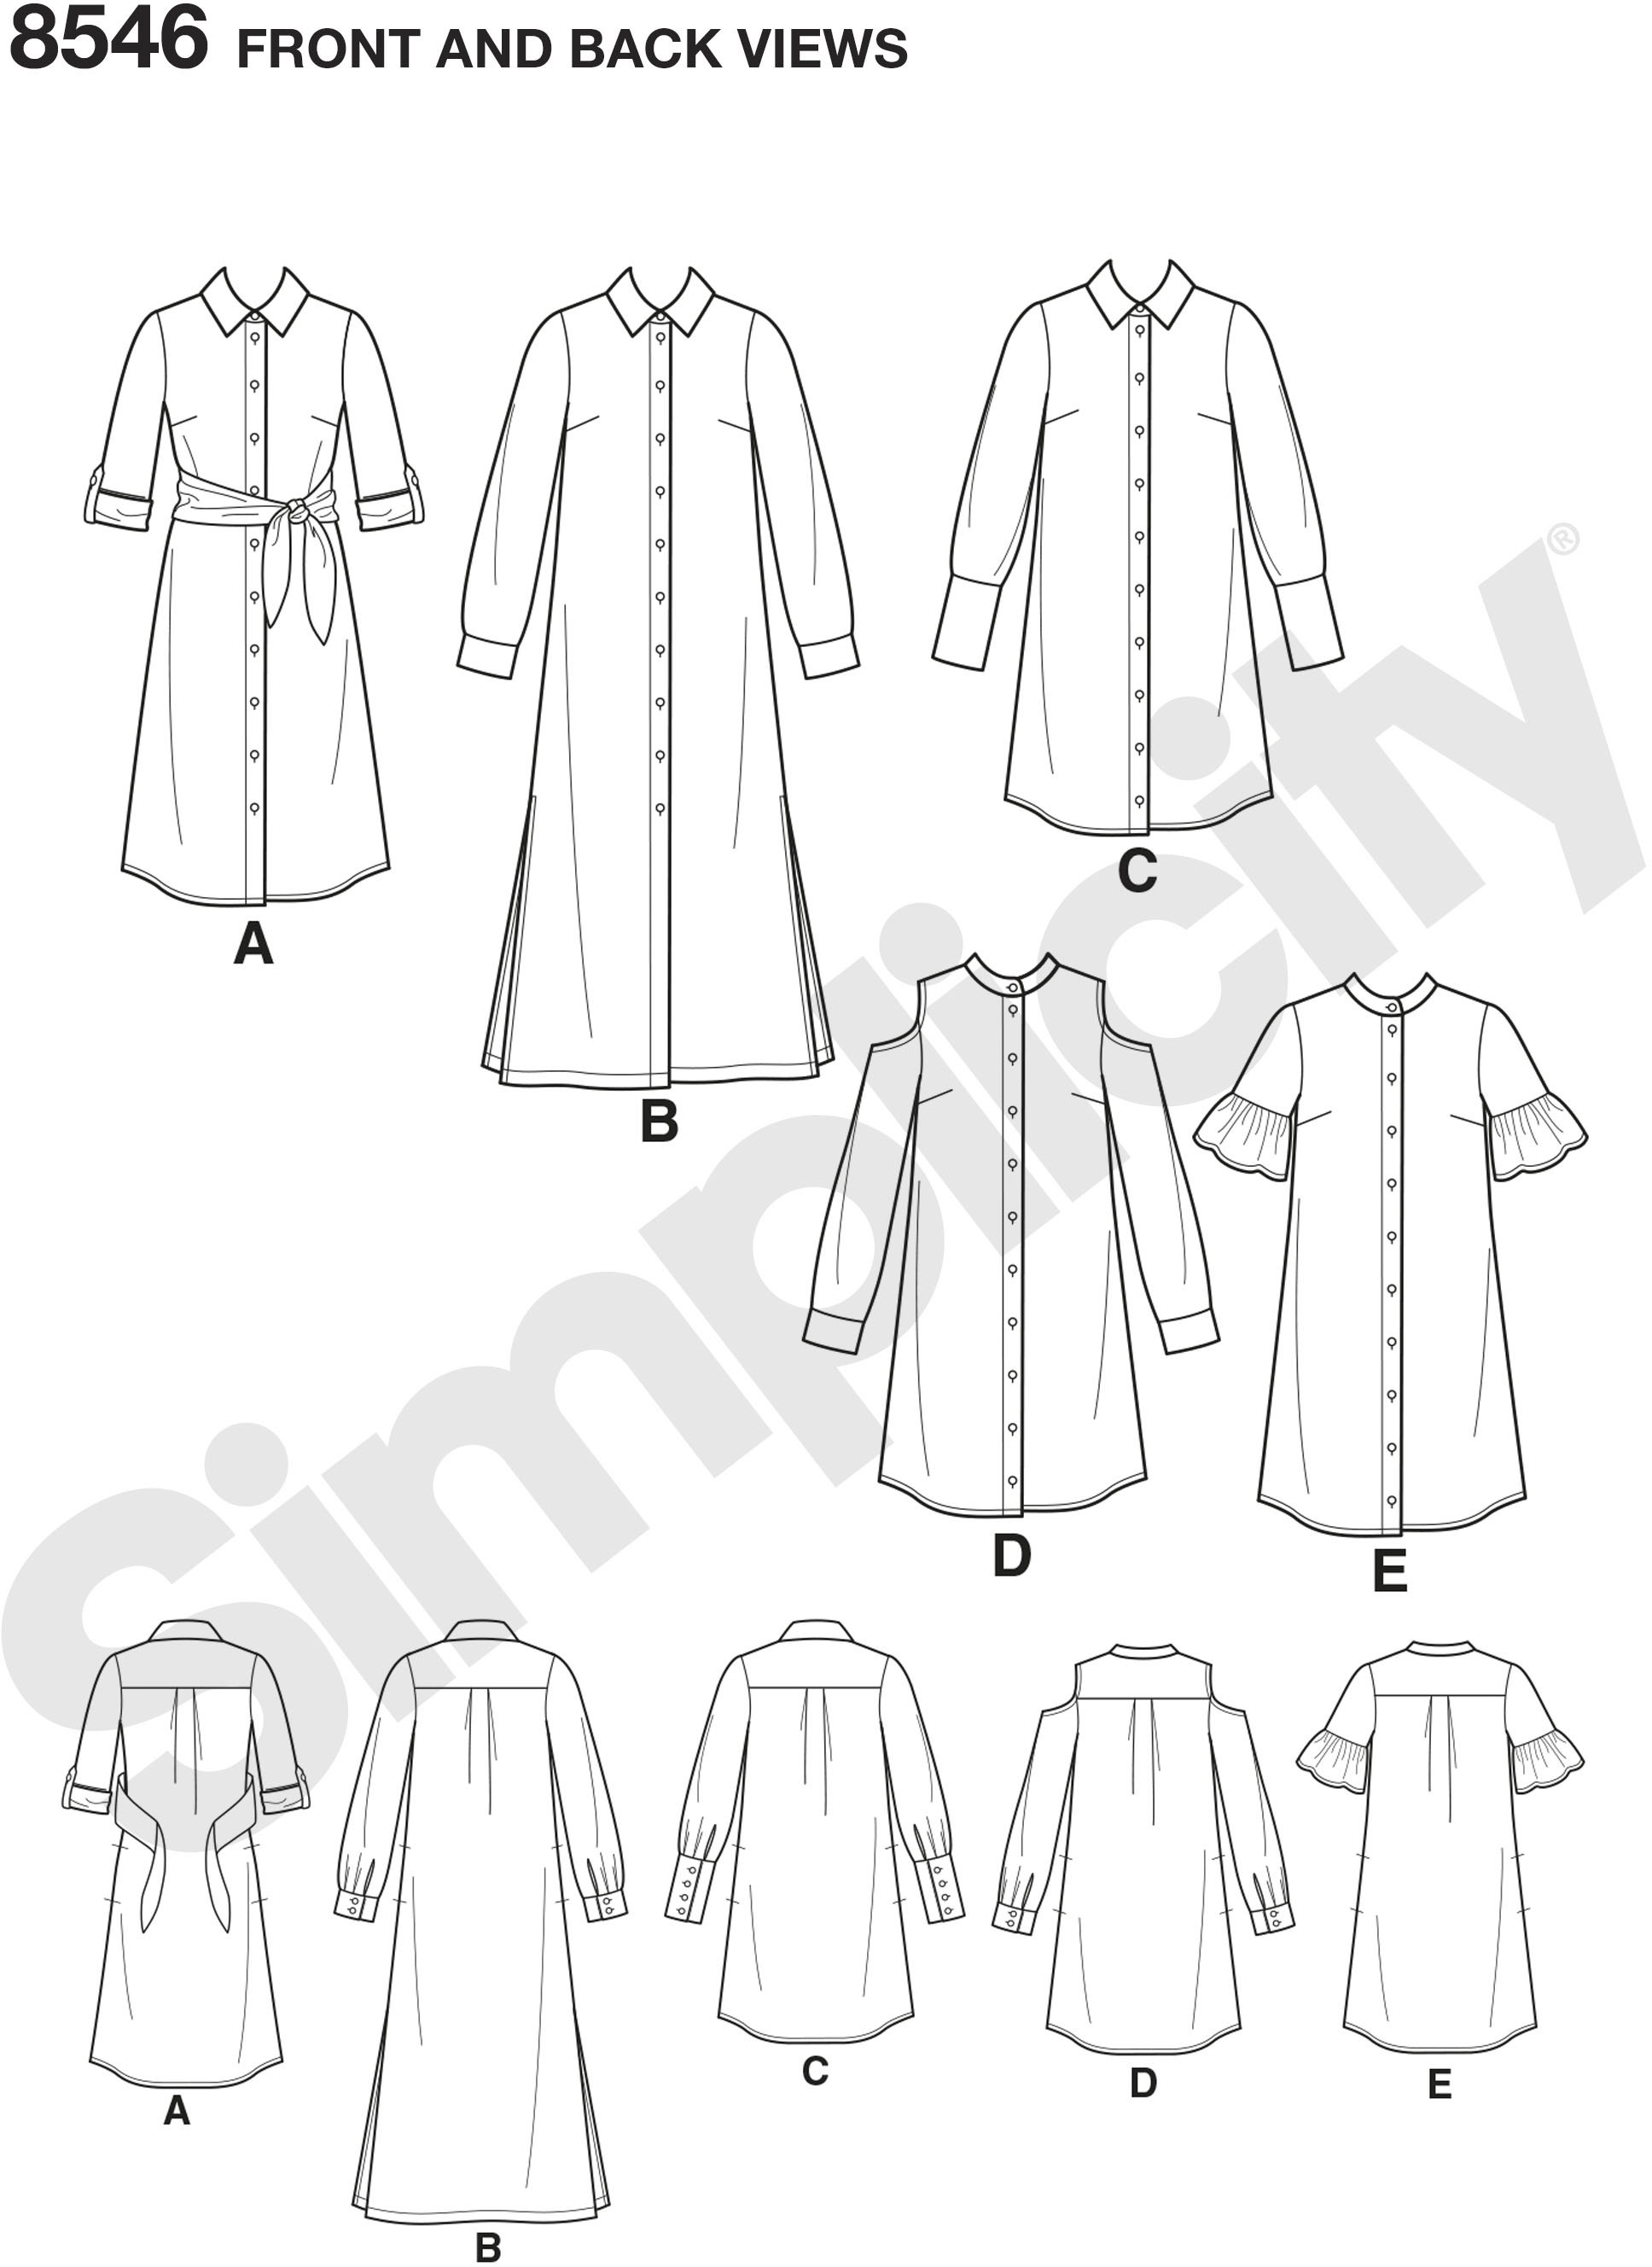 Petite shirt dress pattern has sleeve, collar, cold-shoulder and length variations with button front placket detail. Simplicity sewing pattern from the American Sewing Guild. Fit For Petite.